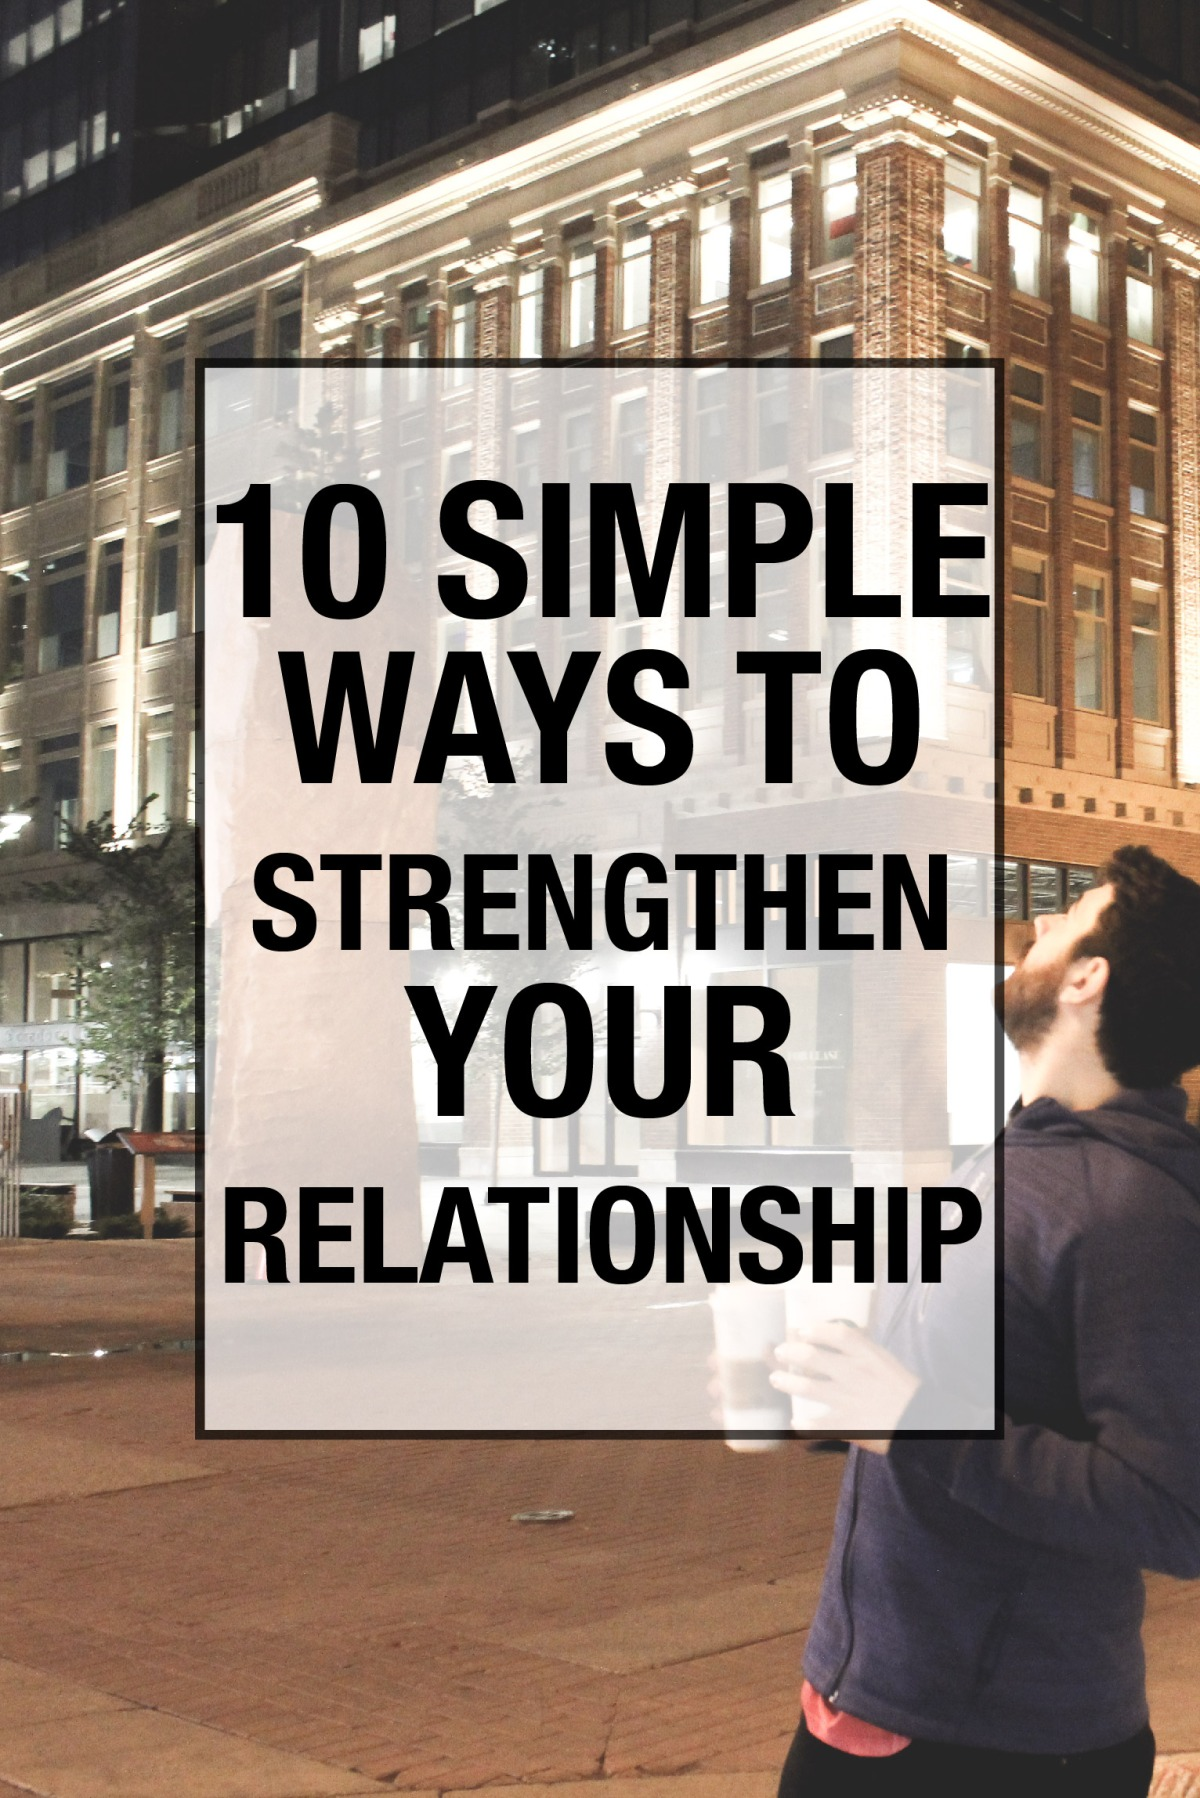 10 Simple Ways To Strengthen Your Relationship